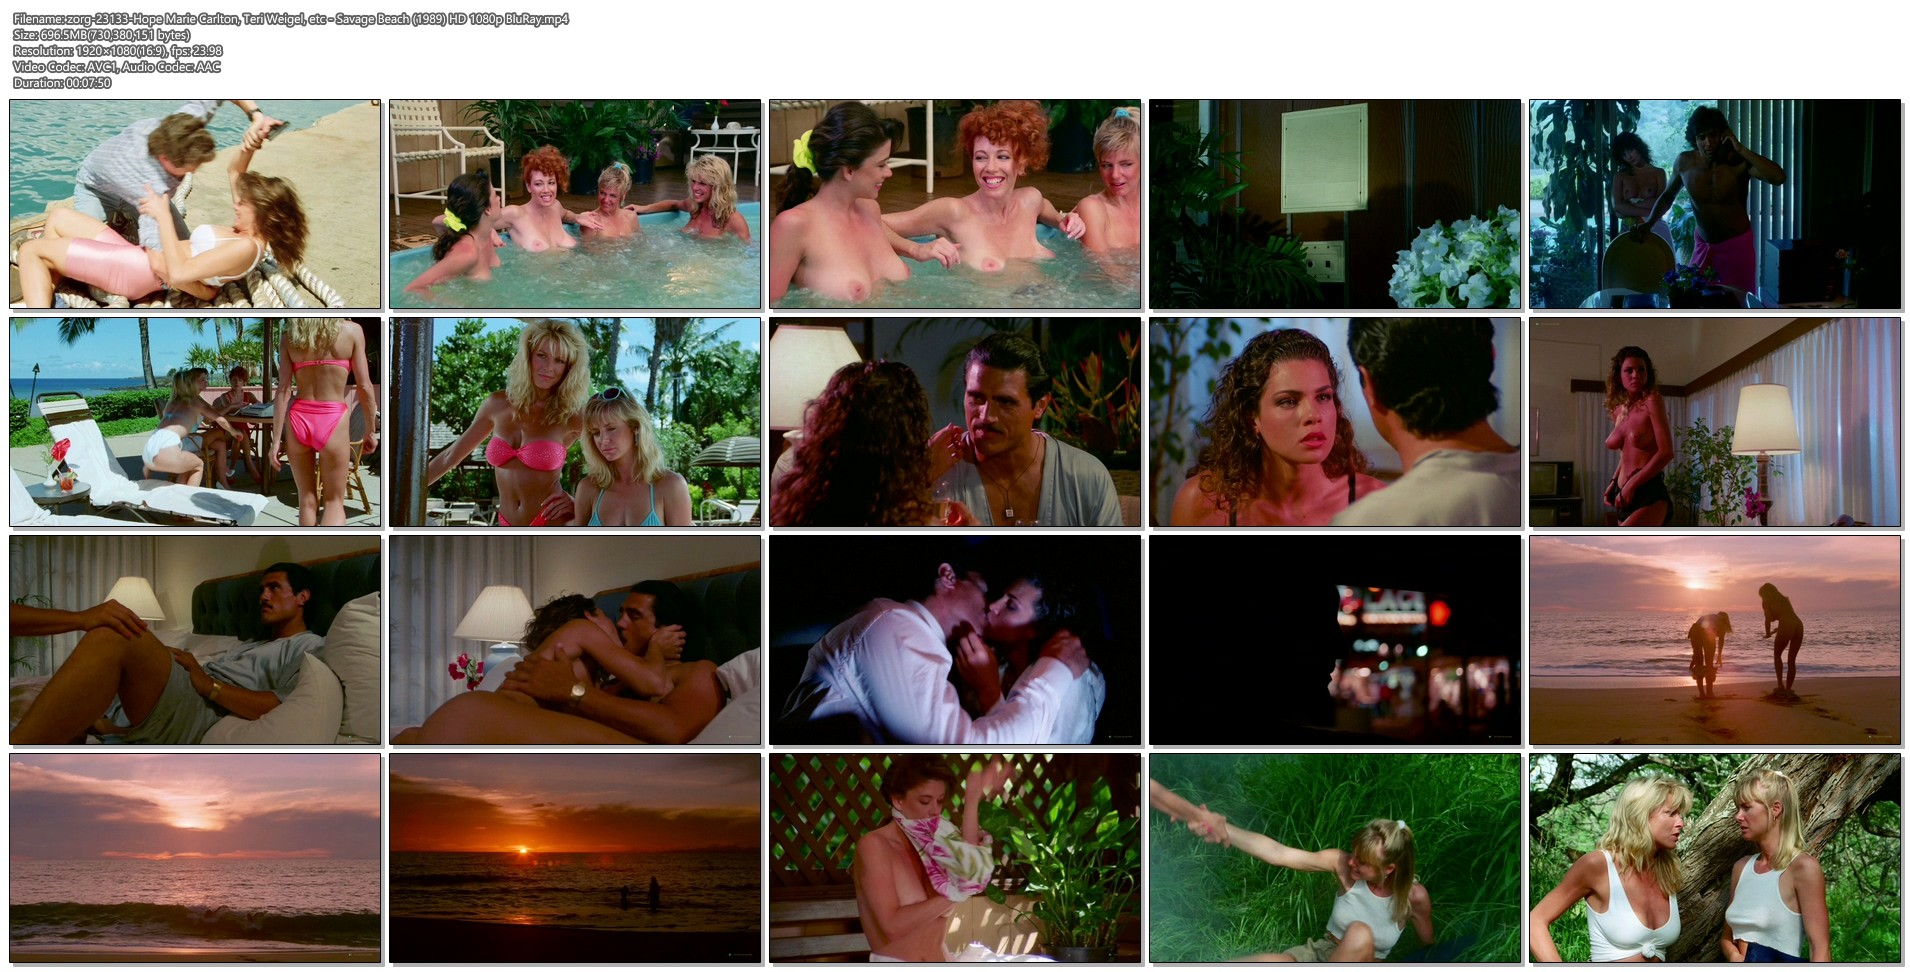 Hope Marie Carlton nude bush Teri Weigel sex in the car Maxine Wasa and other's nude - Savage Beach (1989) HD 1080p BluRay (35)